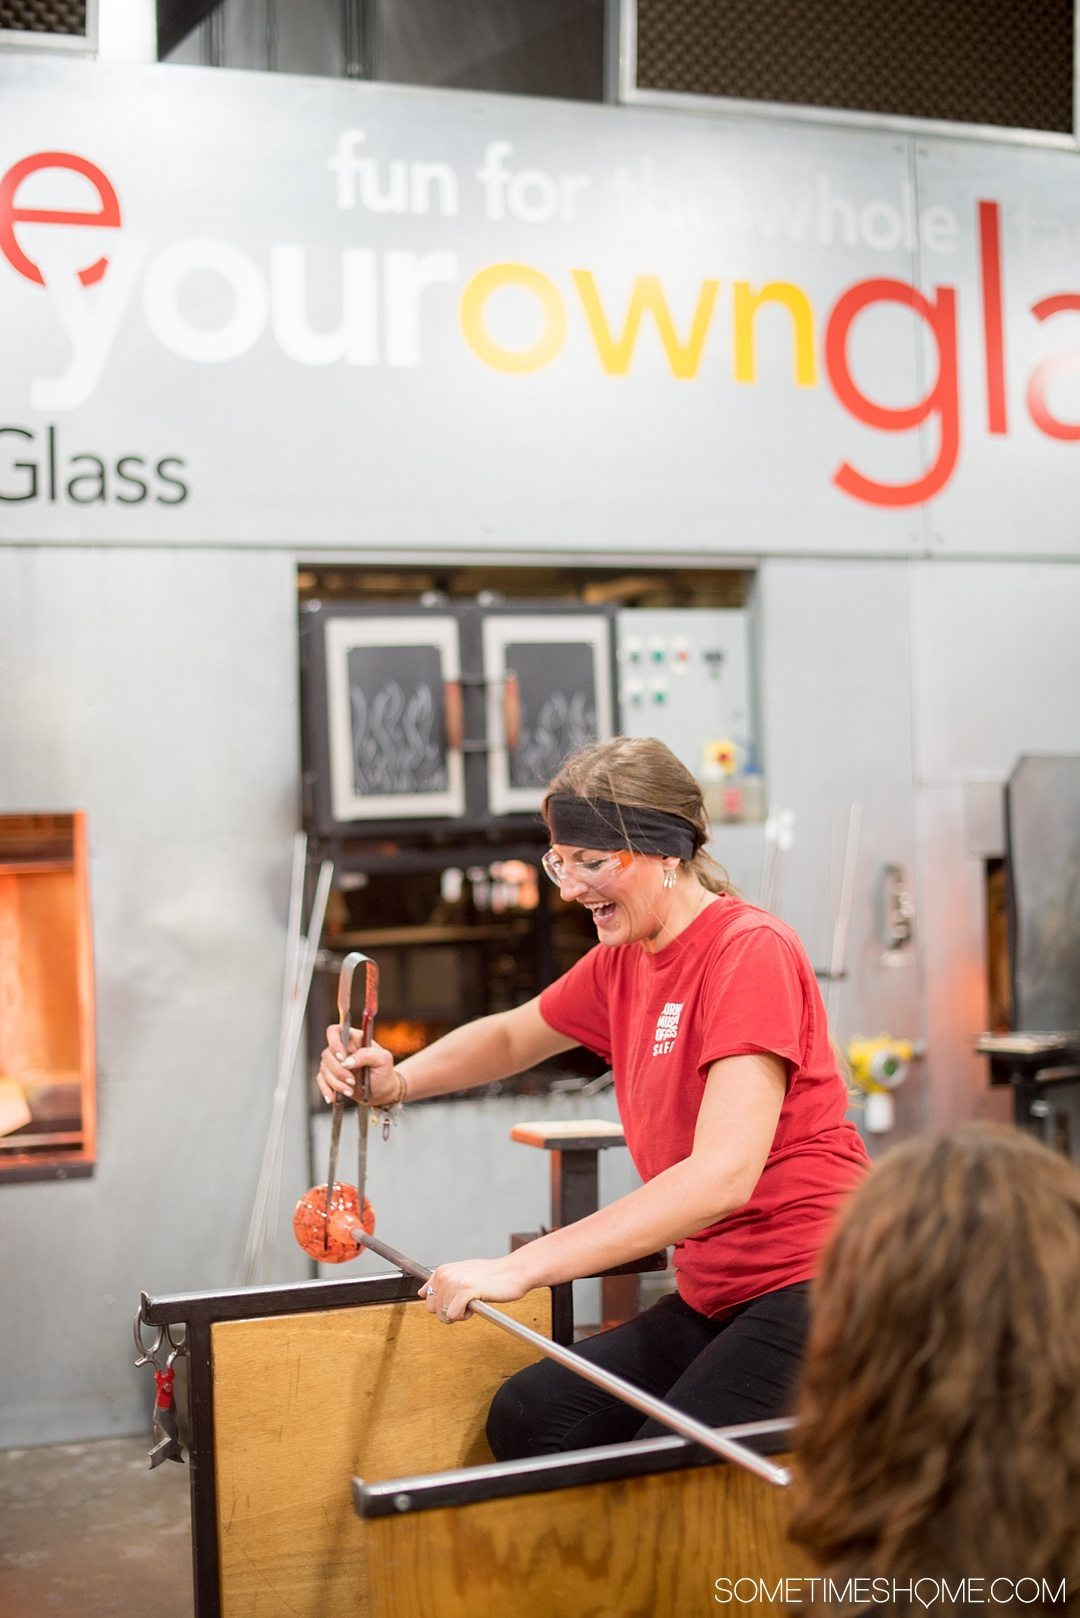 Corning Museum of Glass gift shop, hours, exhibits, photos and more on Sometimes Home travel blog. Also links to an article of what to do in Corning, New York in the Finger Lakes region. Picture of blowing your own glass piece.